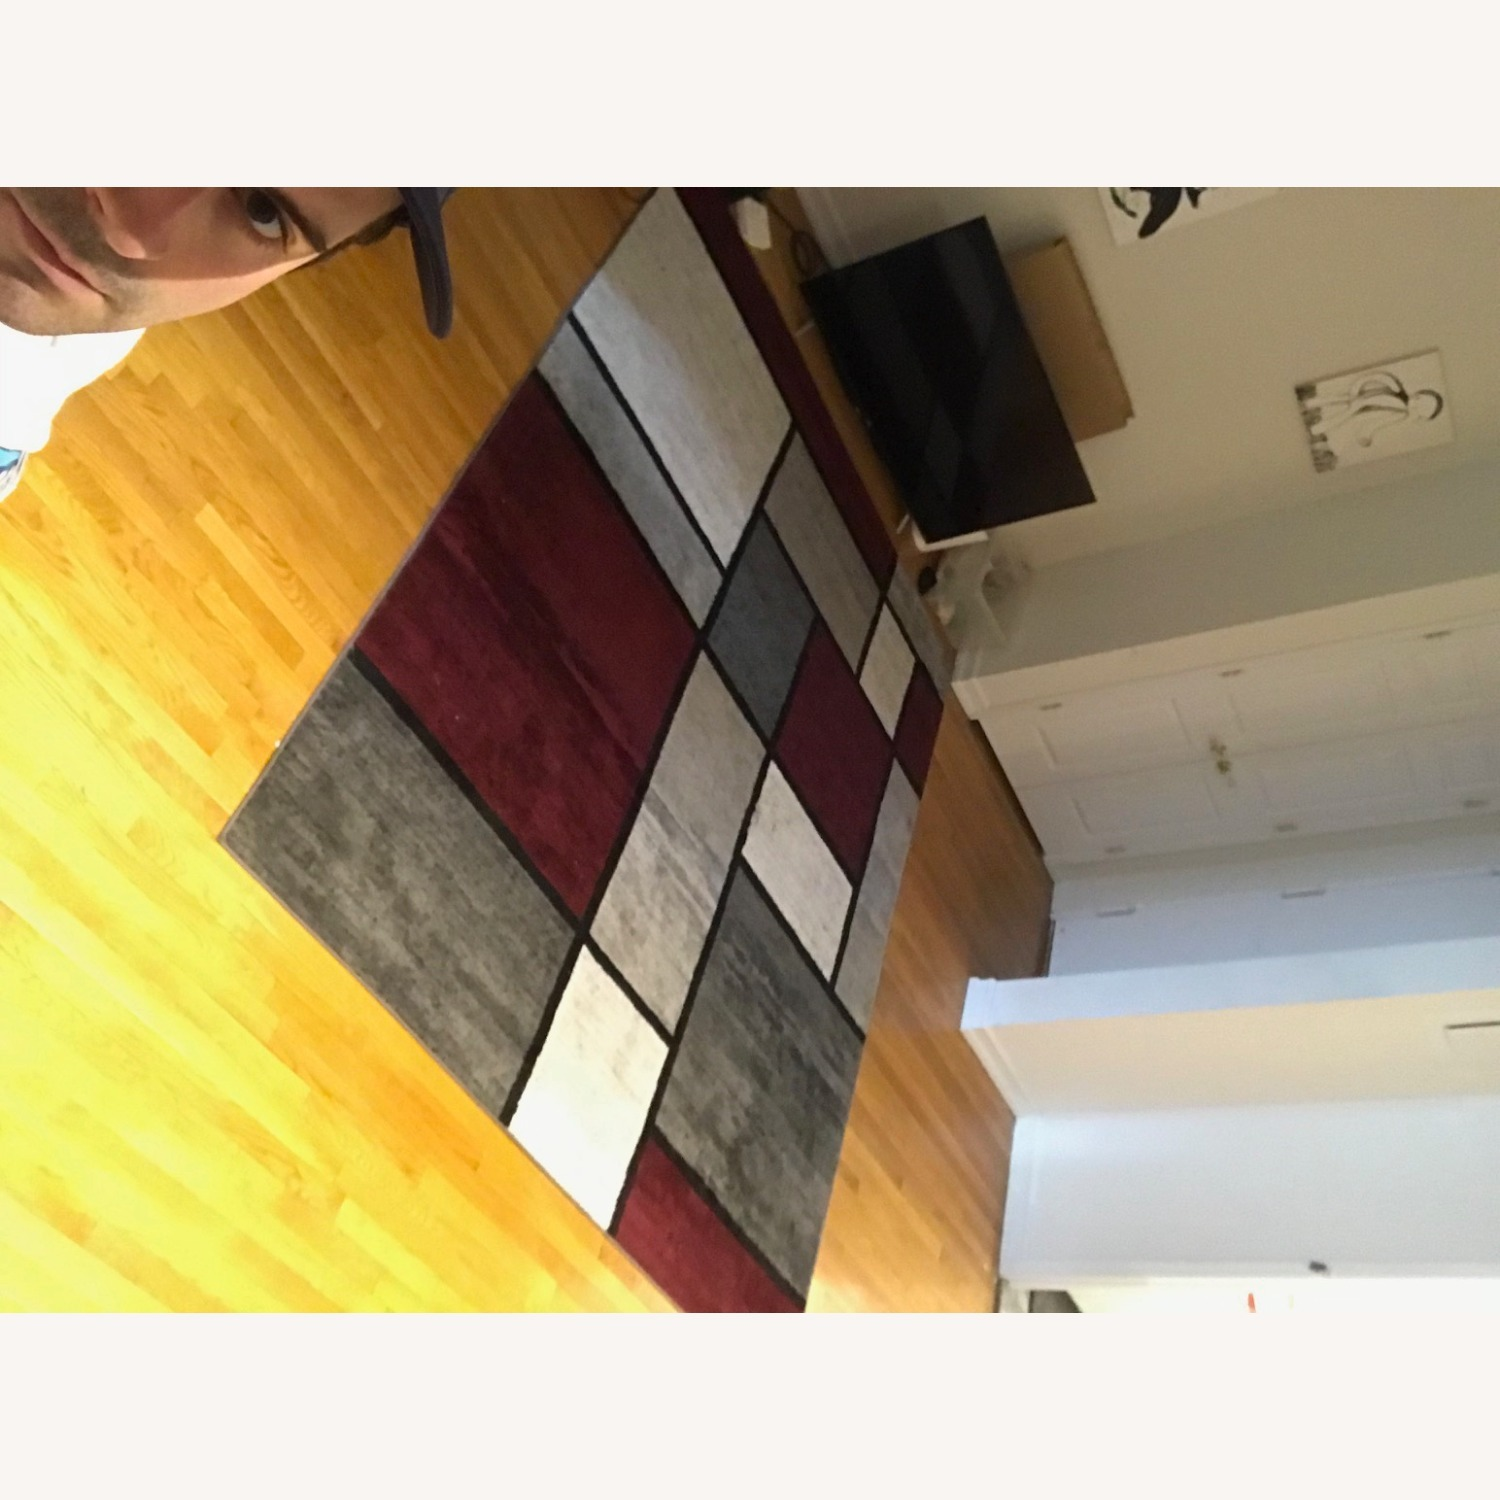 8' x 10' Red White and Grey Area Rug w Rug Pad - image-15